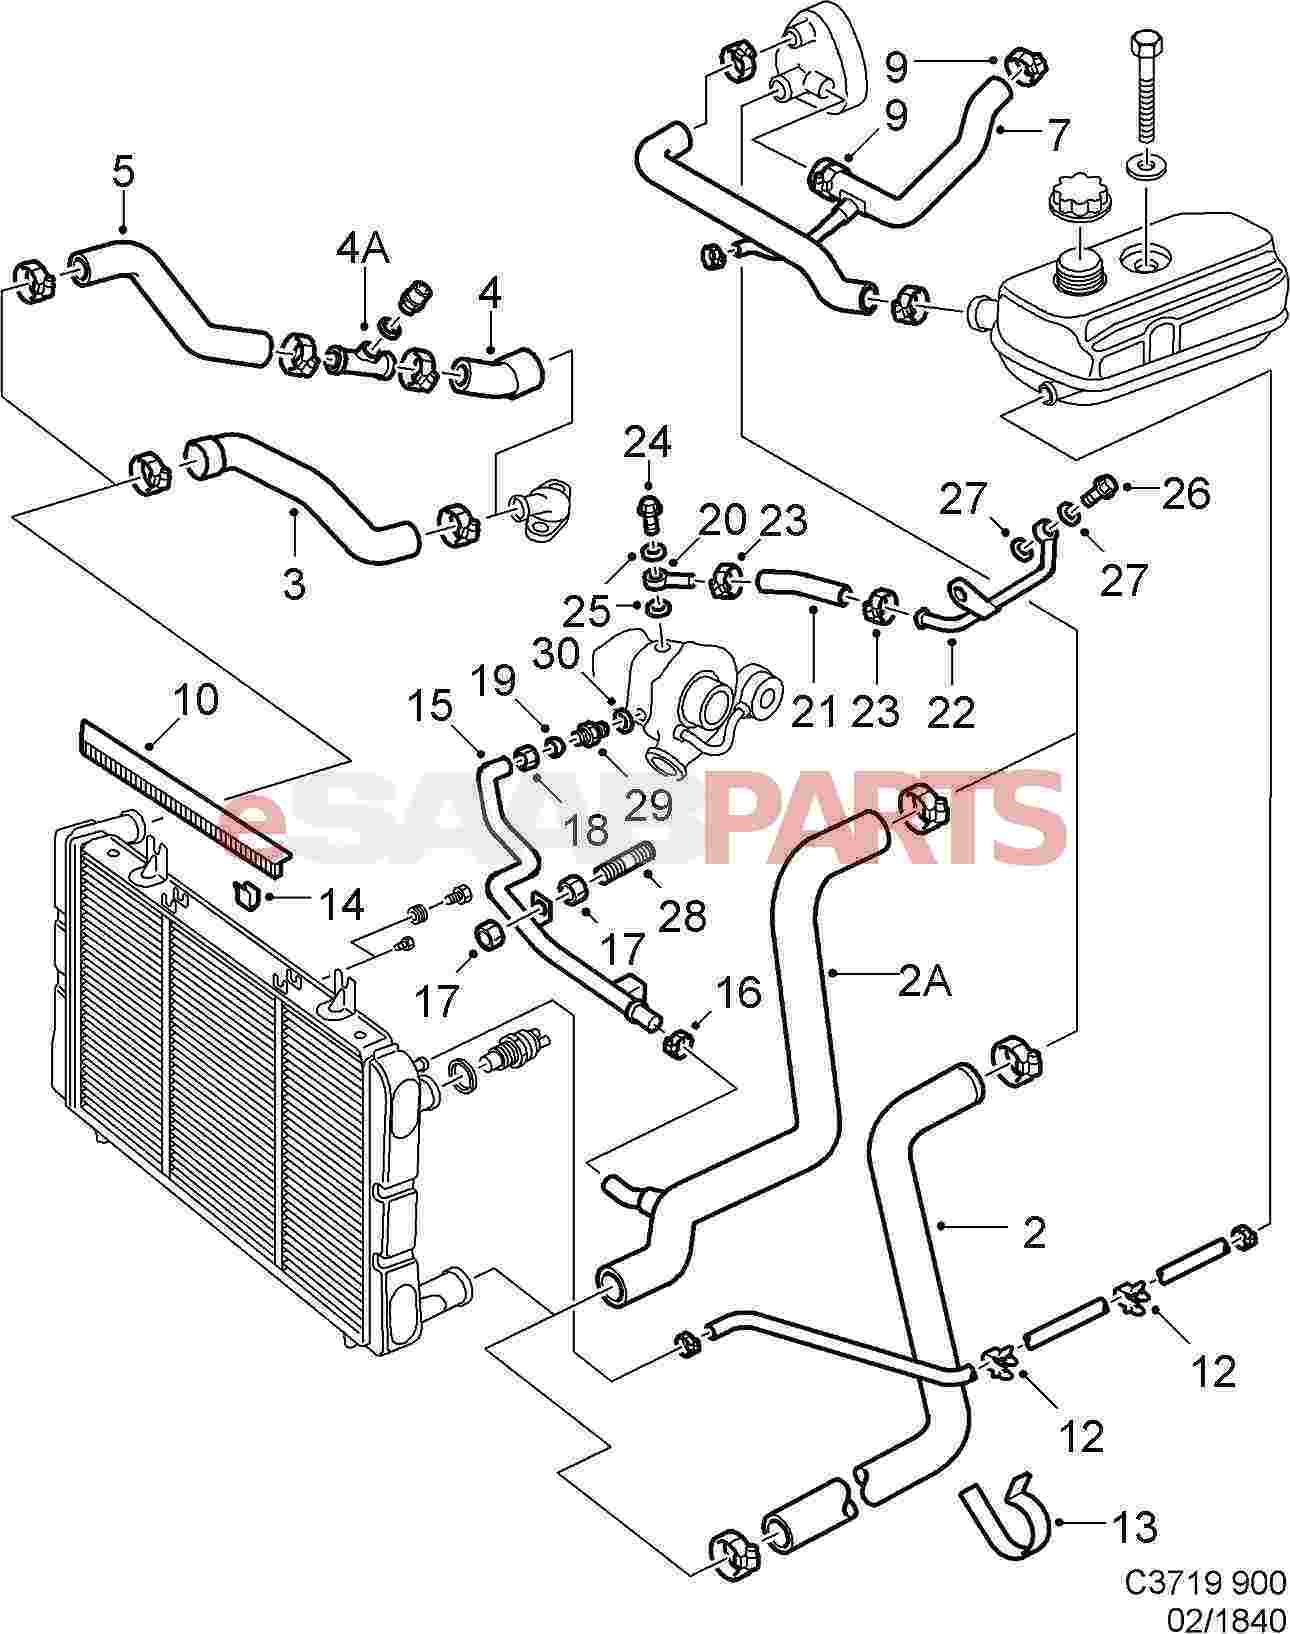 on vw tiguan 2011 fuse box diagram